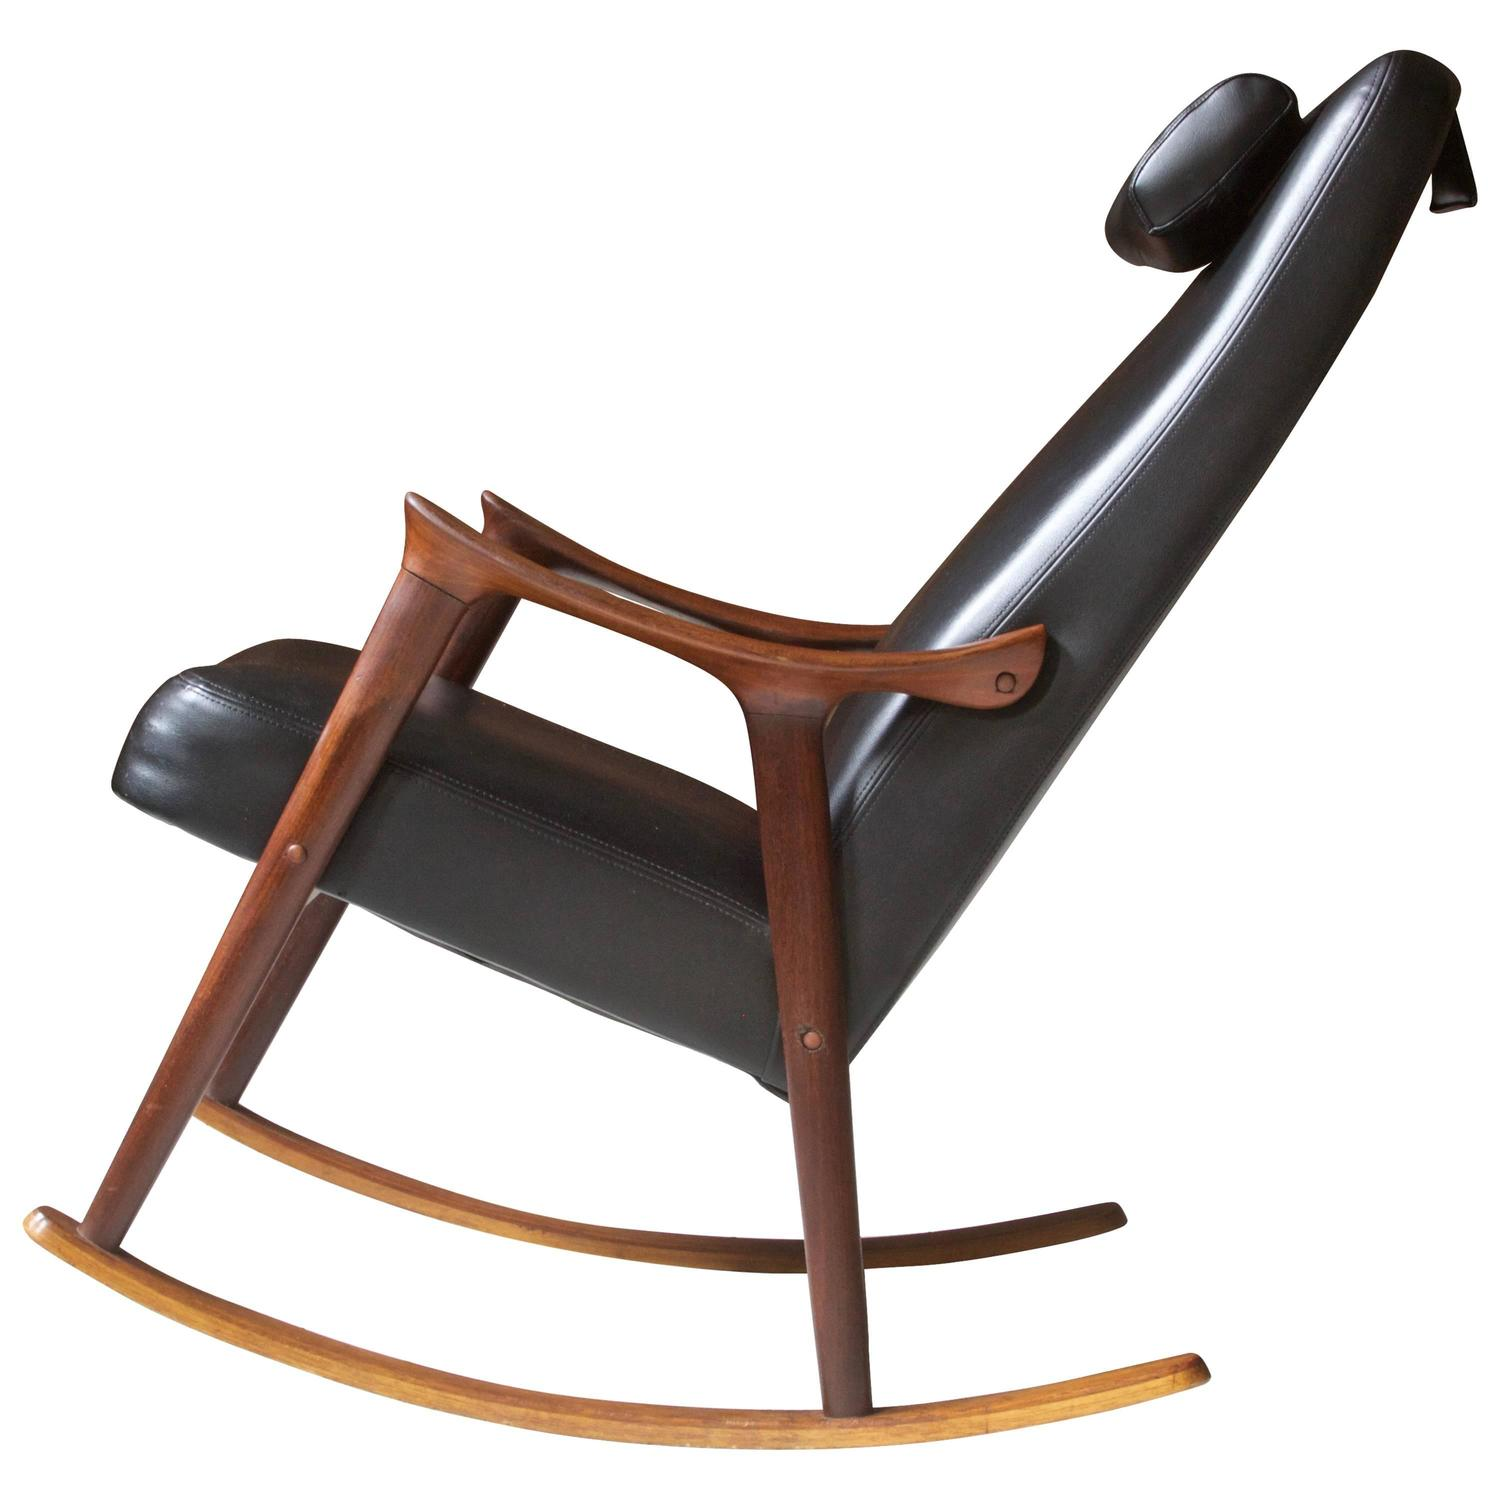 antique rocking chairs without arms patio swivel chair ingmar relling for westnofa sculpted teak and black vinyl